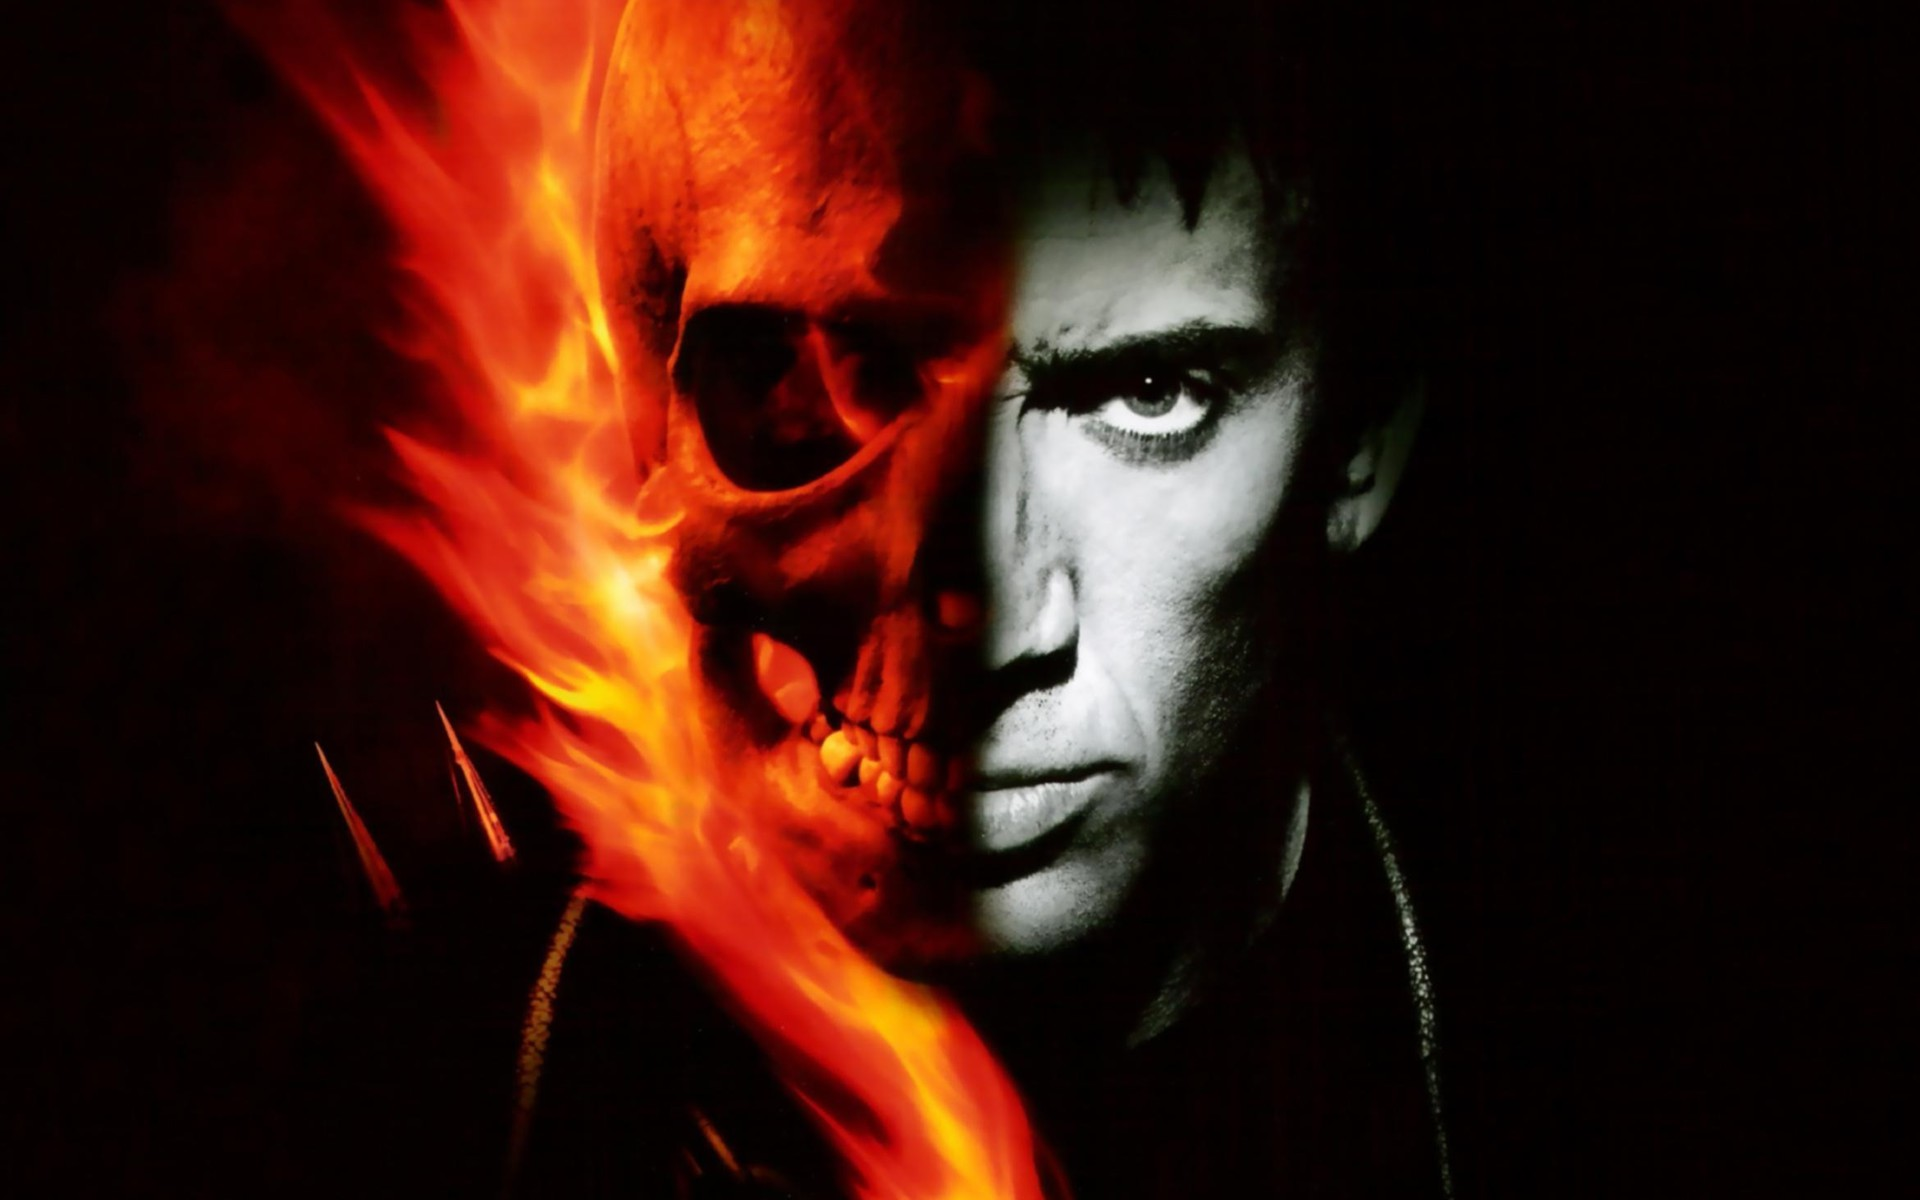 ghost rider 2 wallpapers hd